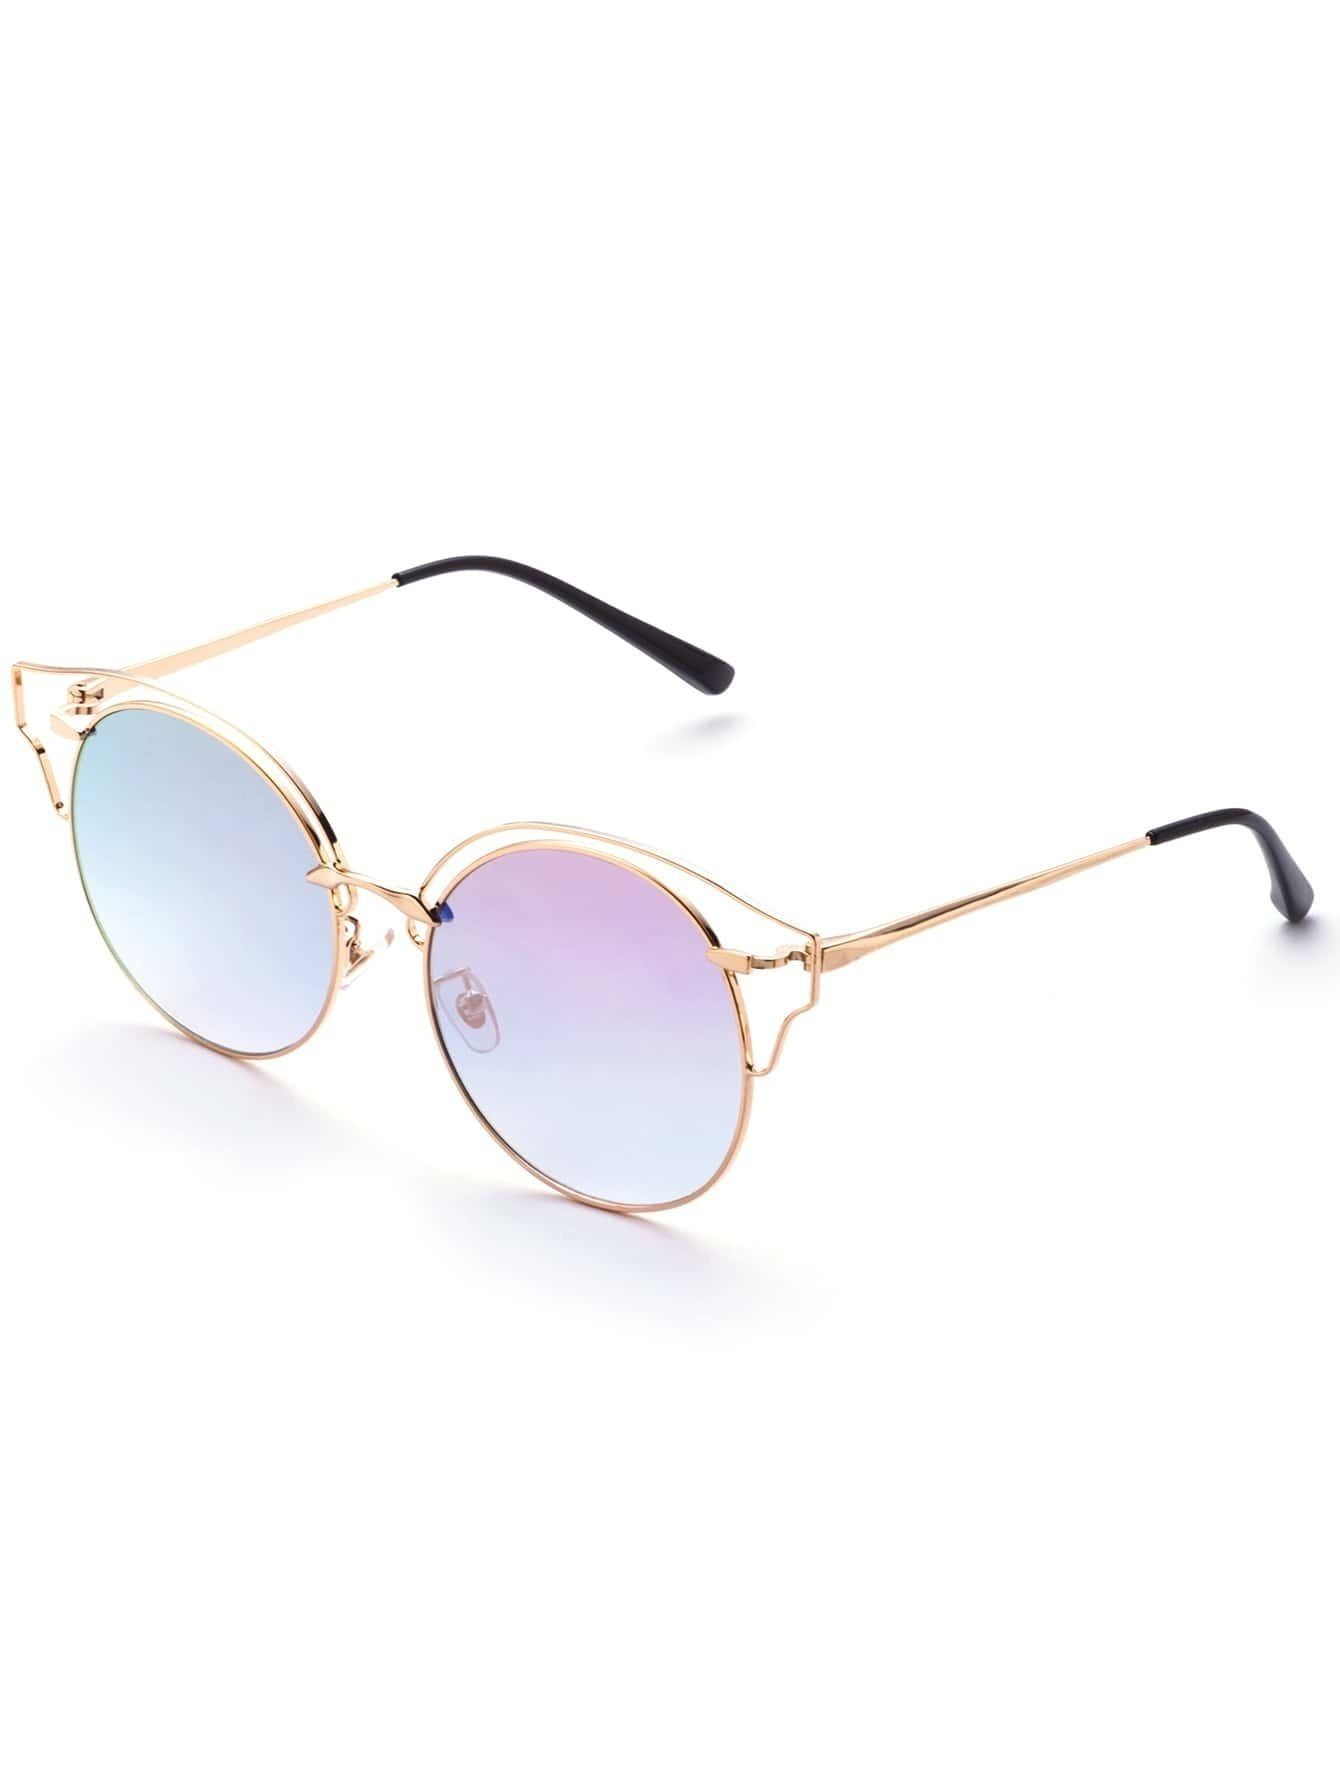 Gold Frame Pink Lens Cat Eye Sunglasses